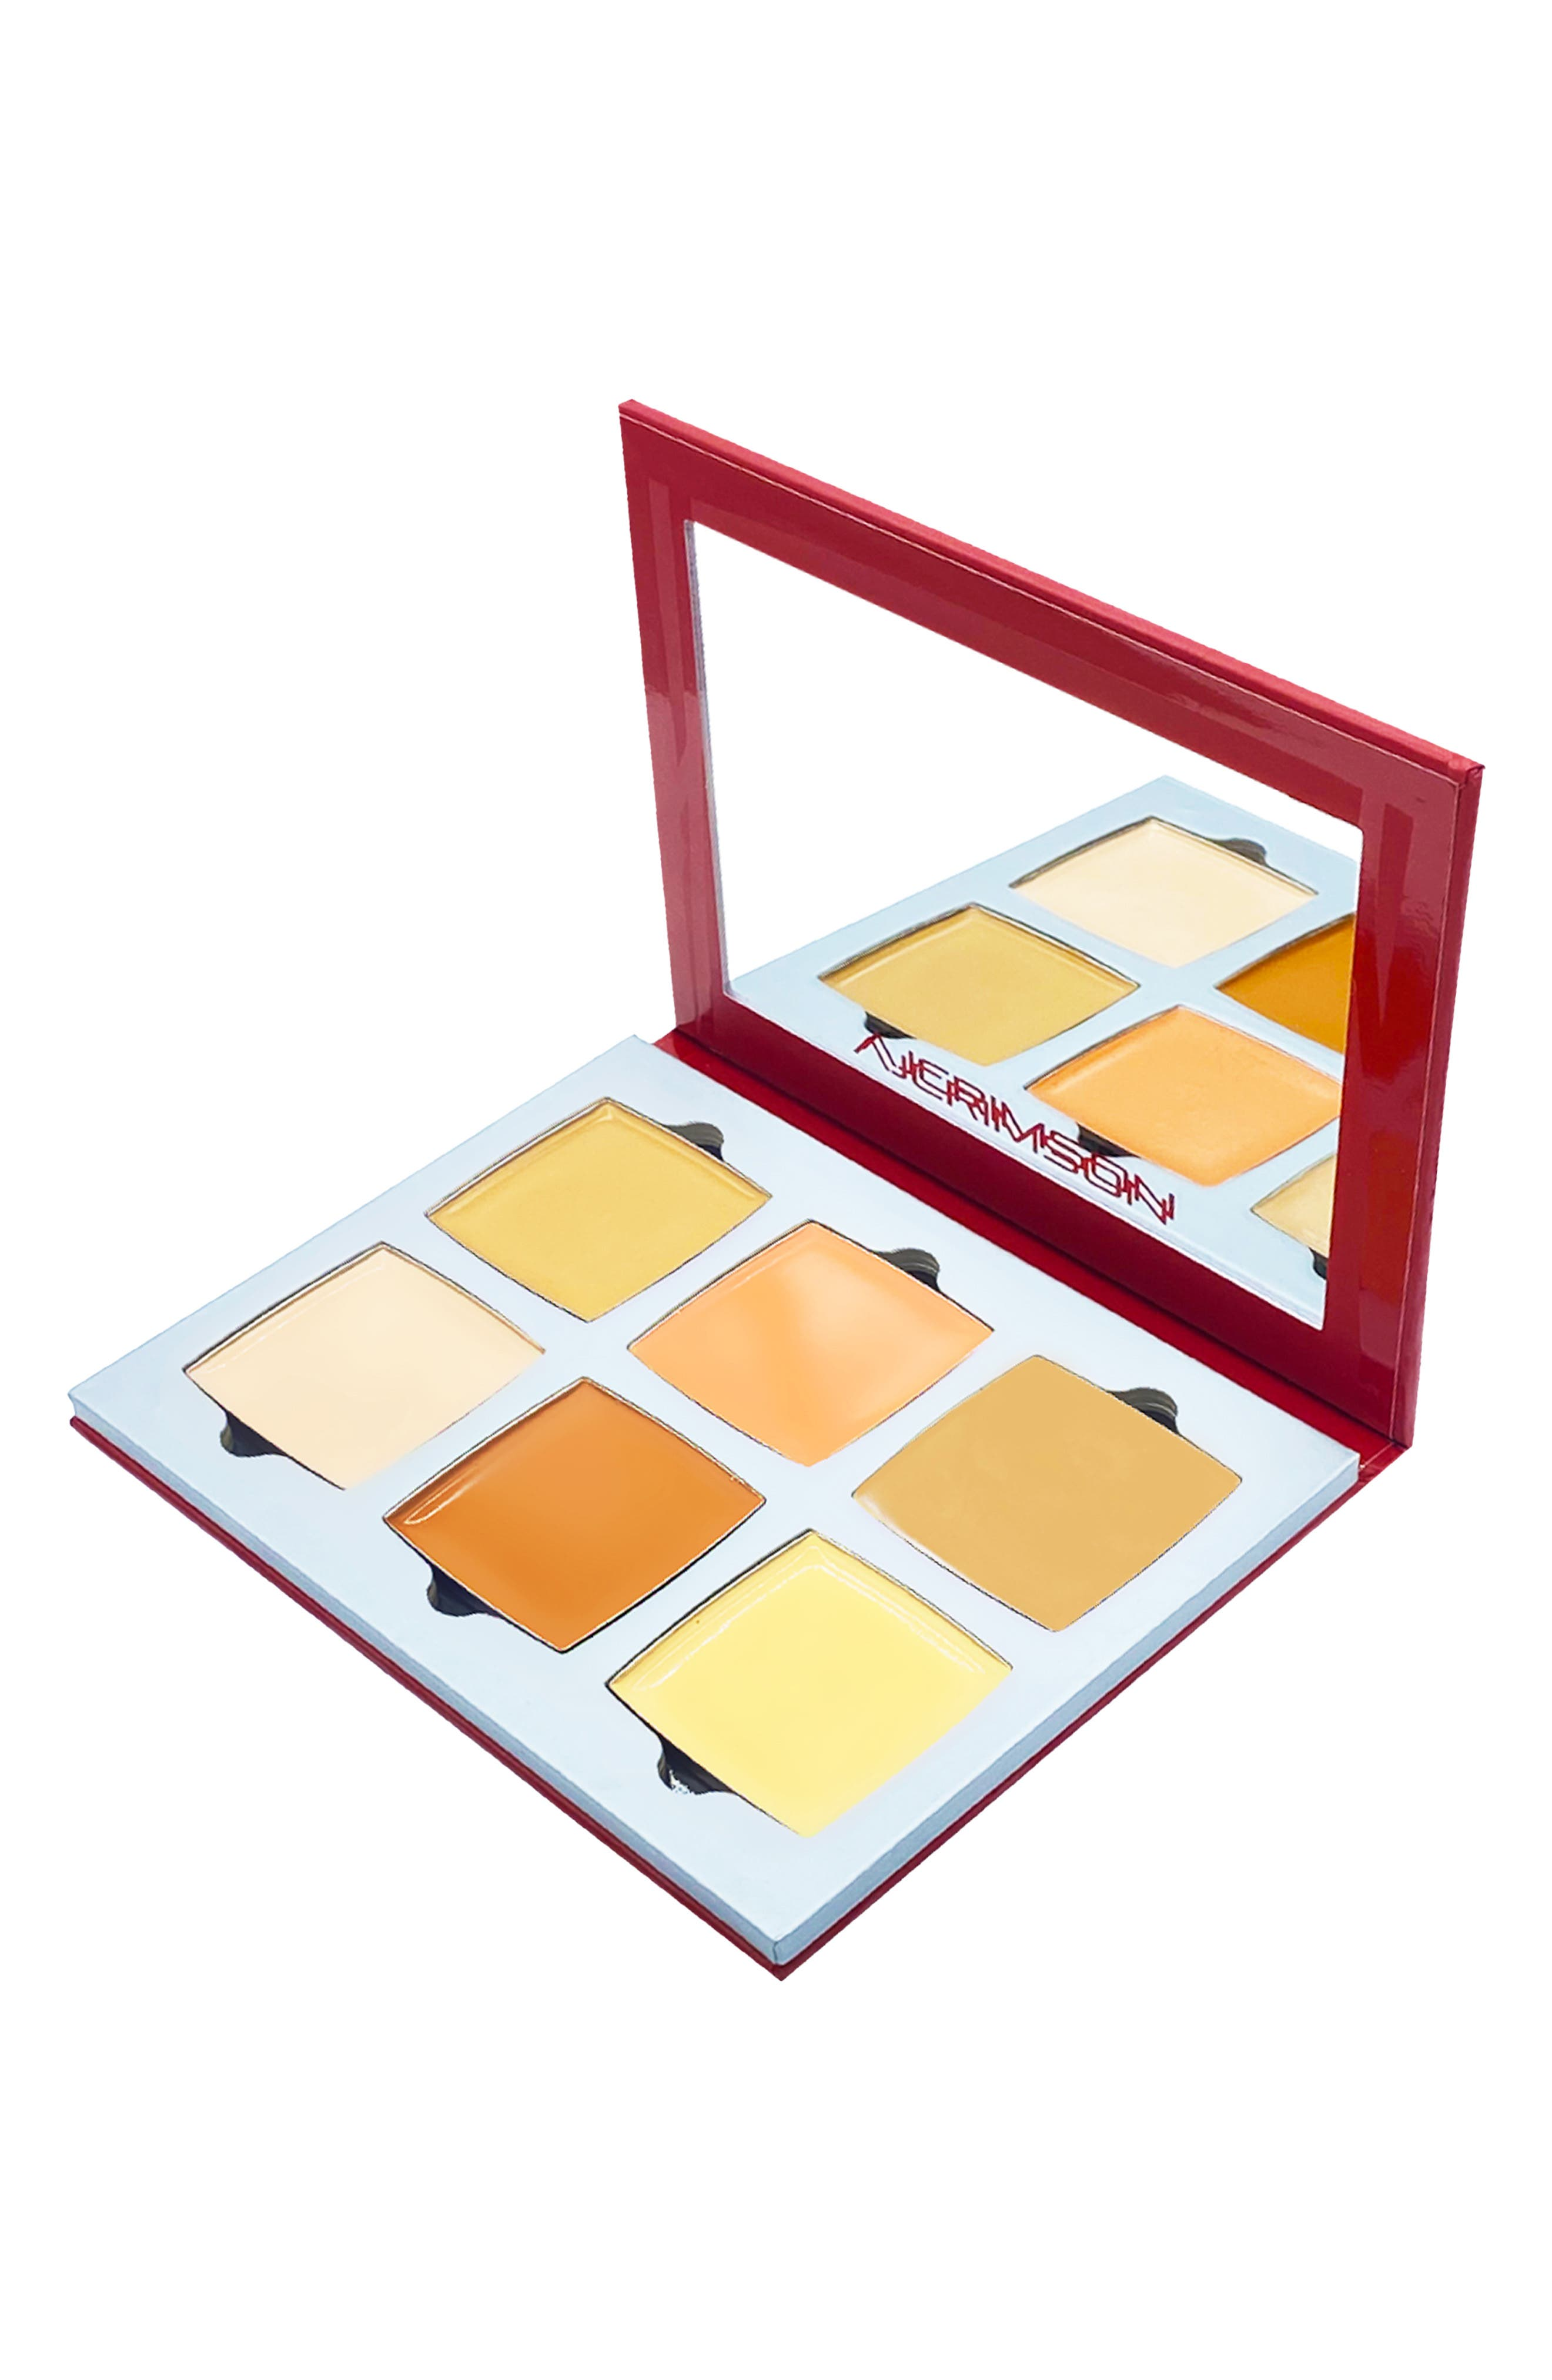 AJ CRIMSON BEAUTY Correct & Conceal Artist Kit in Correct/Conceal at Nordstrom